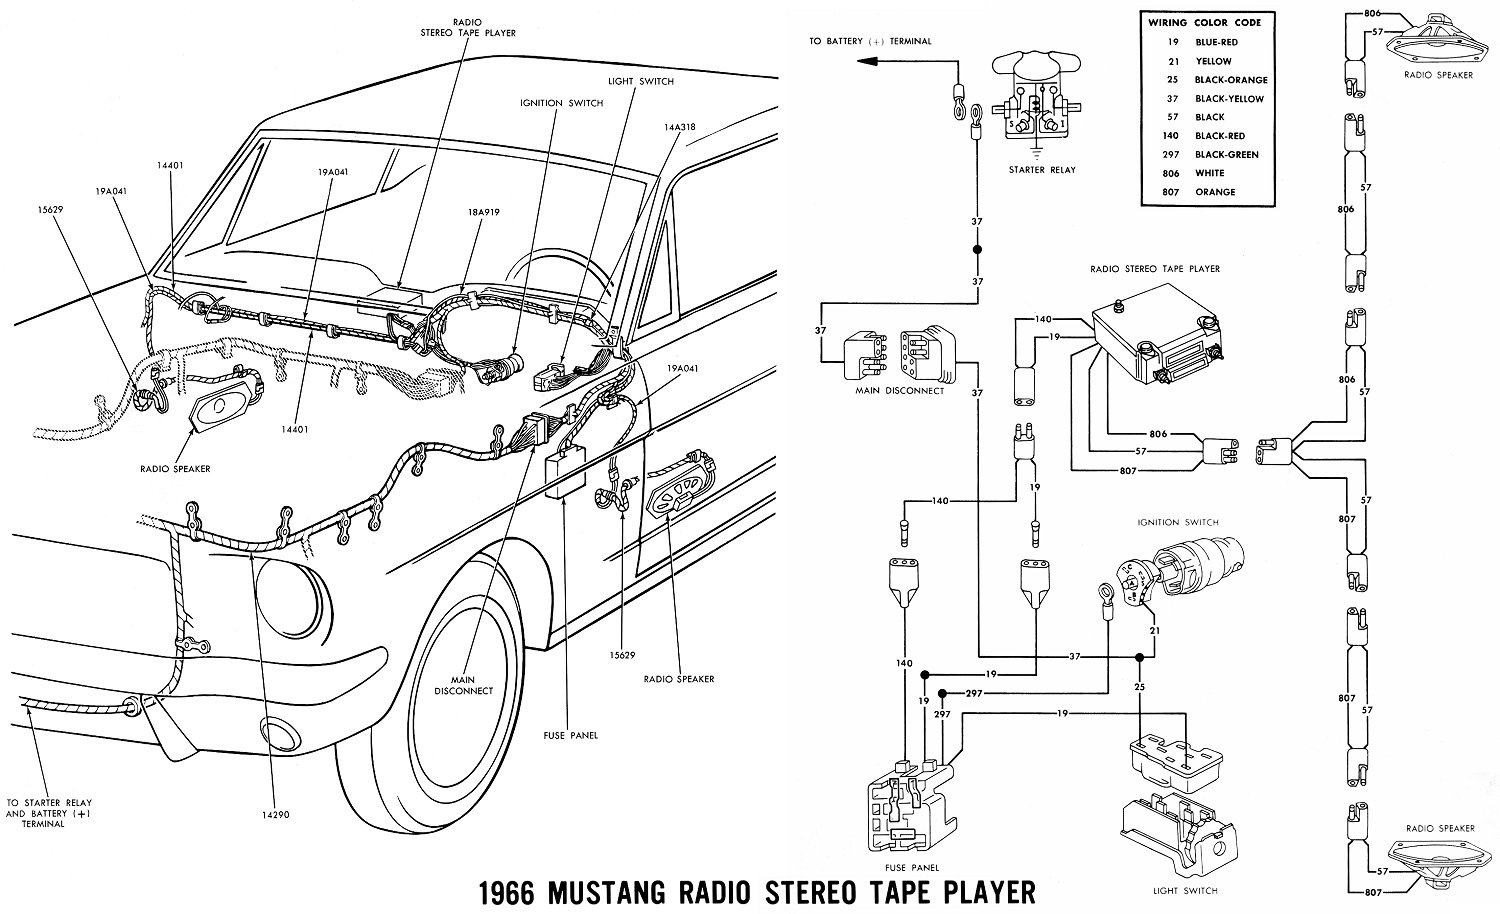 67 ford mustang fuse box wiring diagram rh 26 fomly be